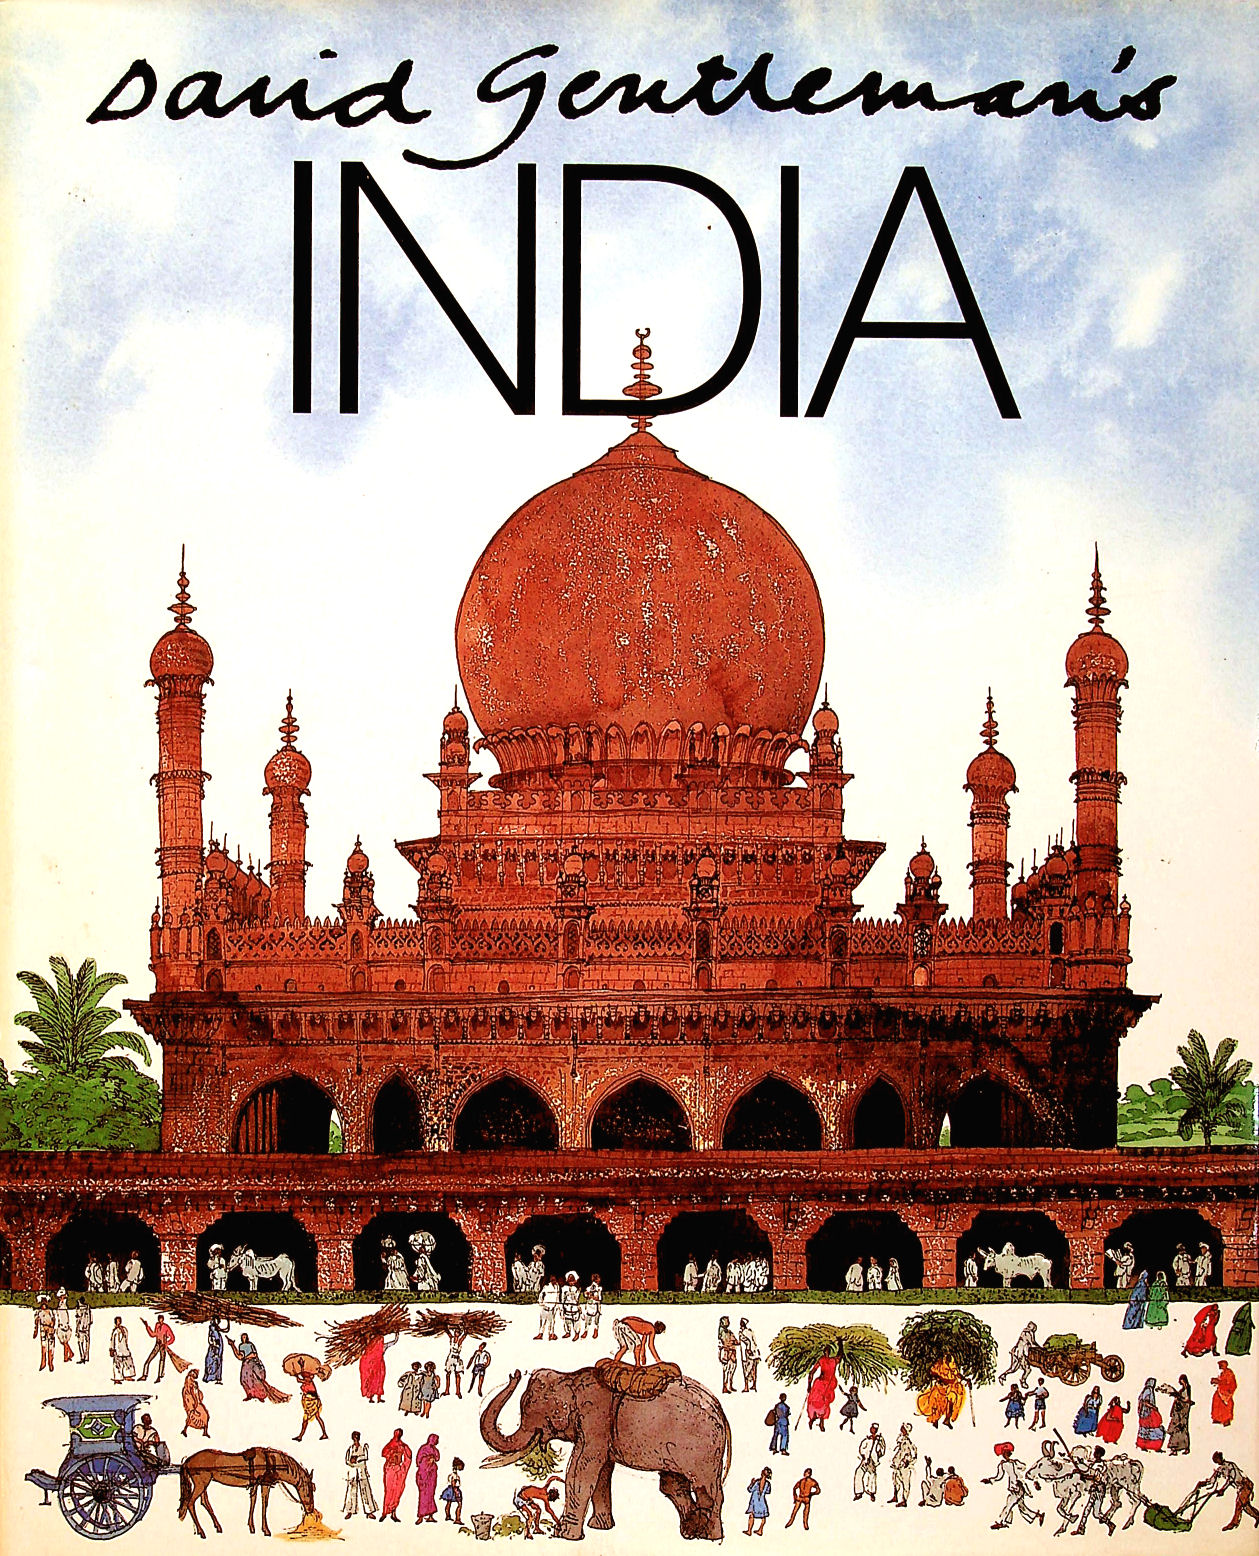 Image for David Gentleman's India